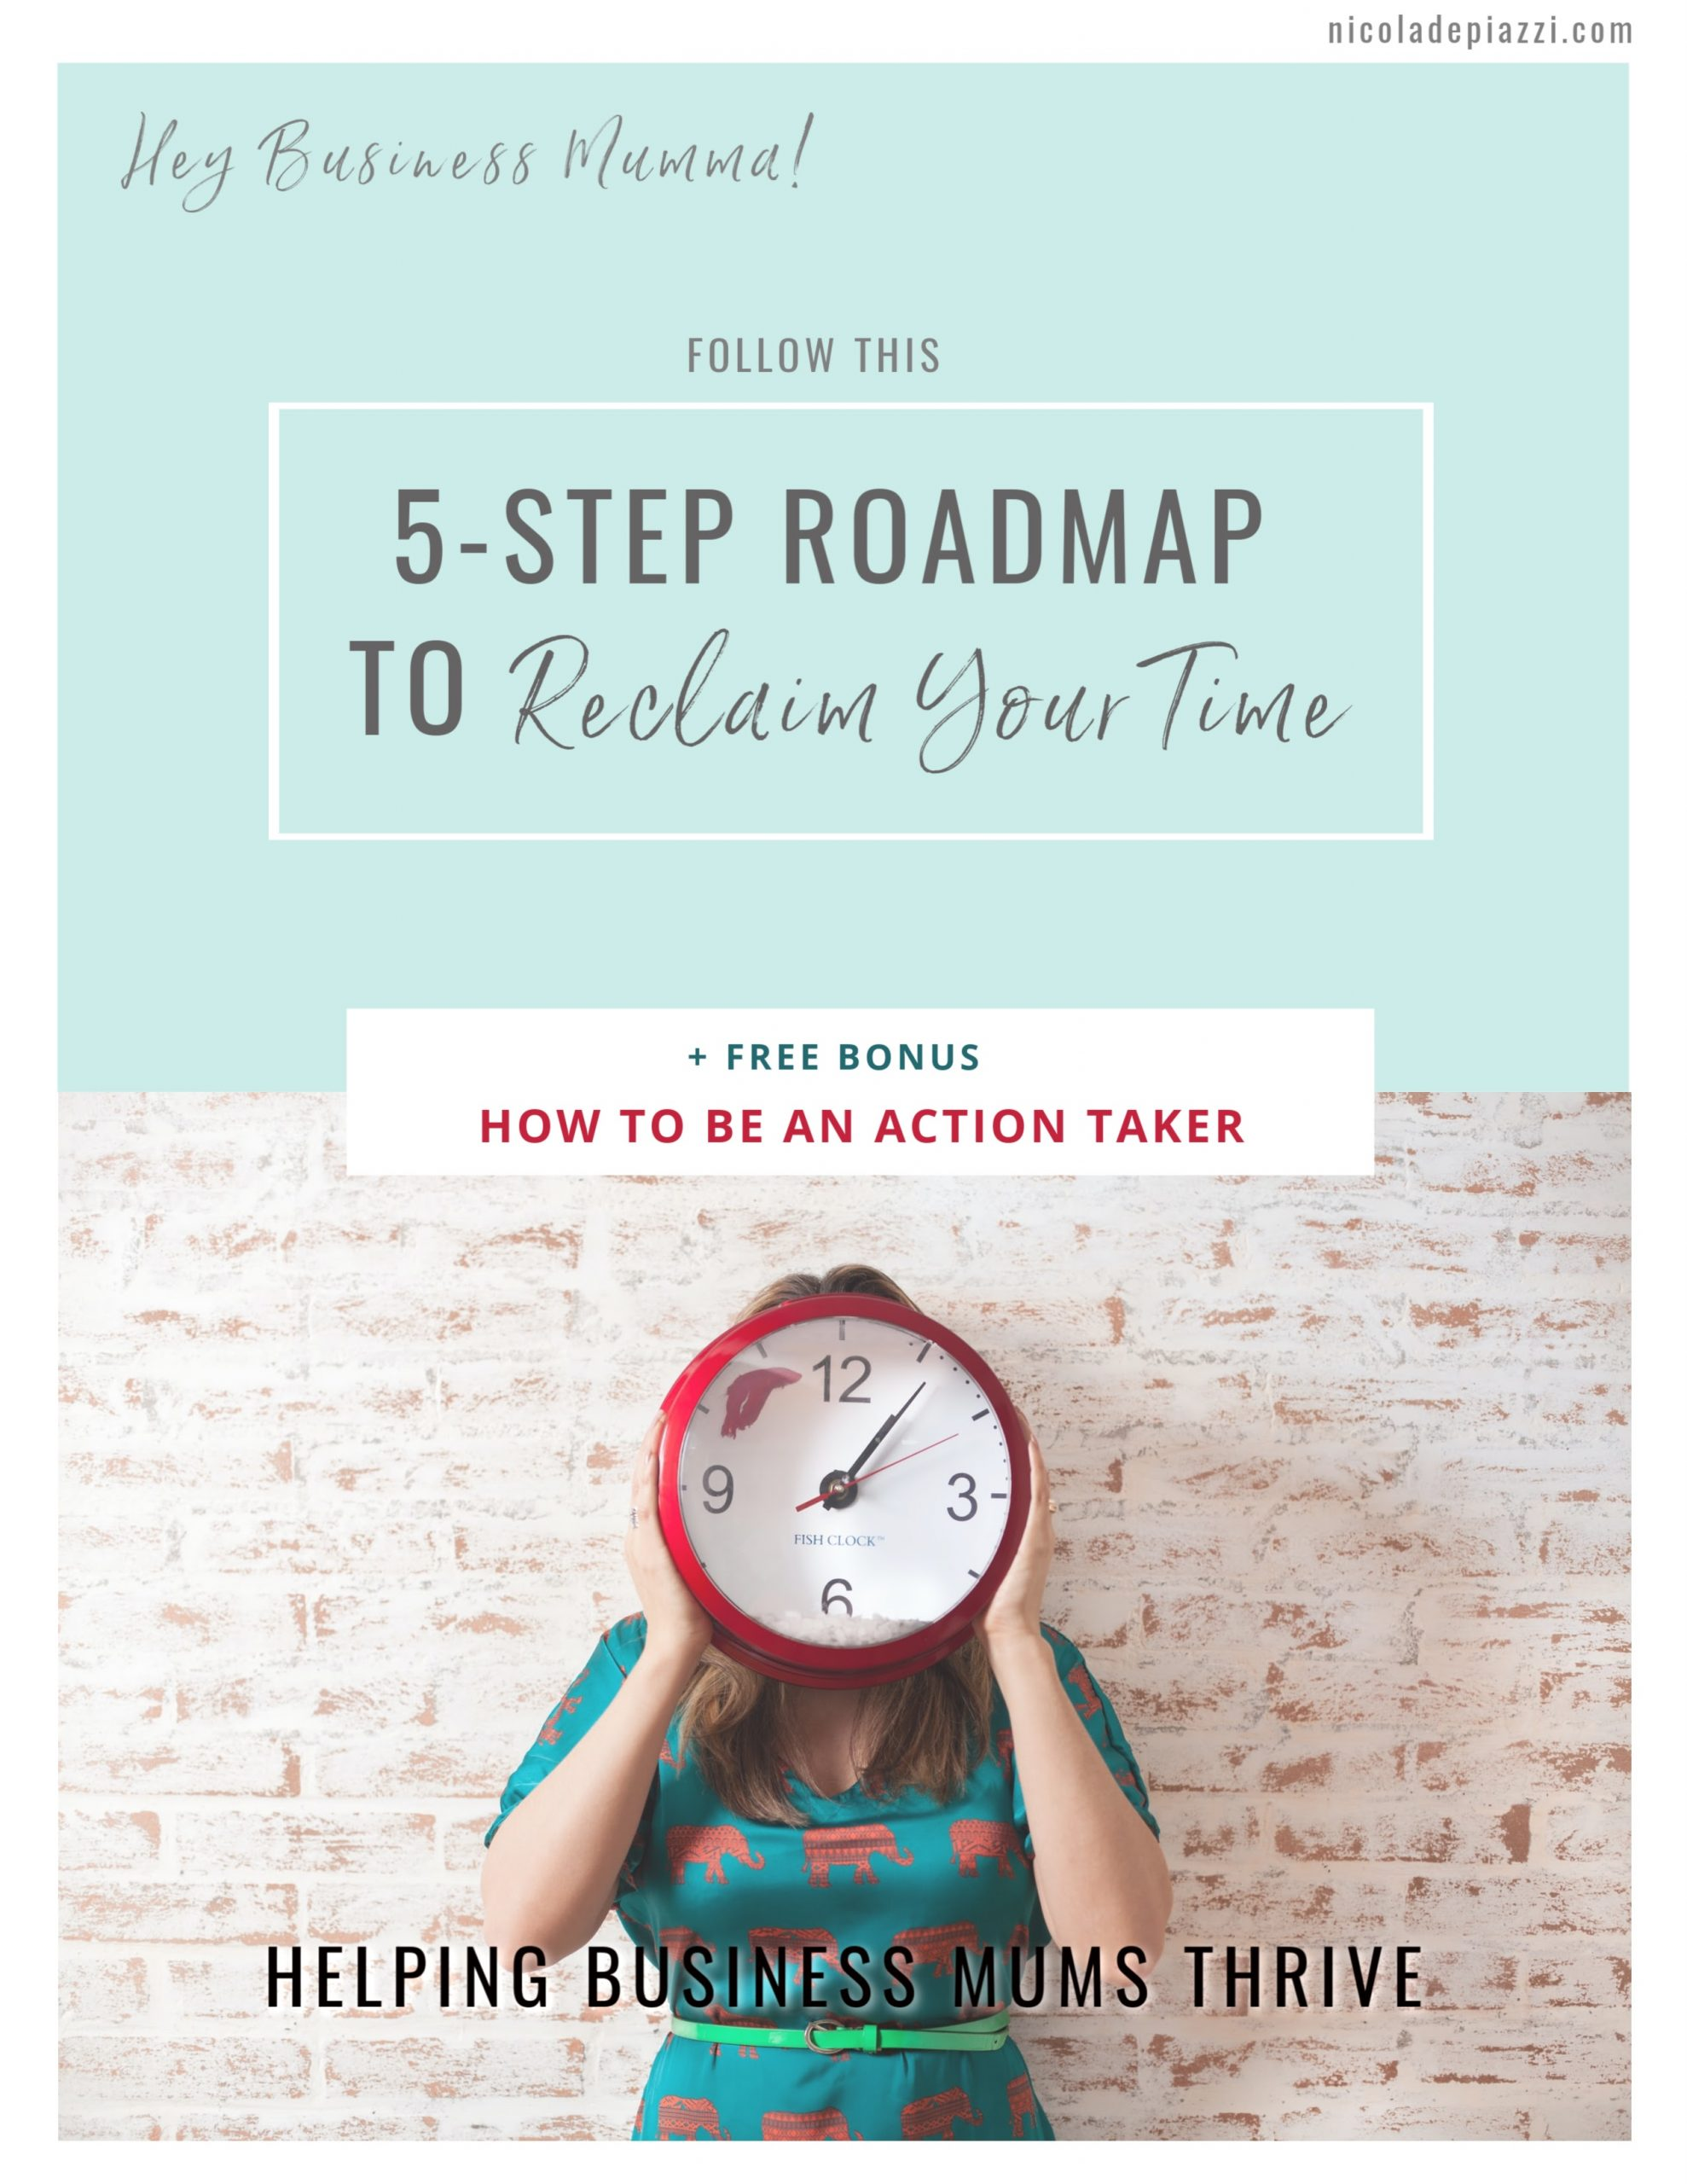 Roadmap to Reclaim Your Time